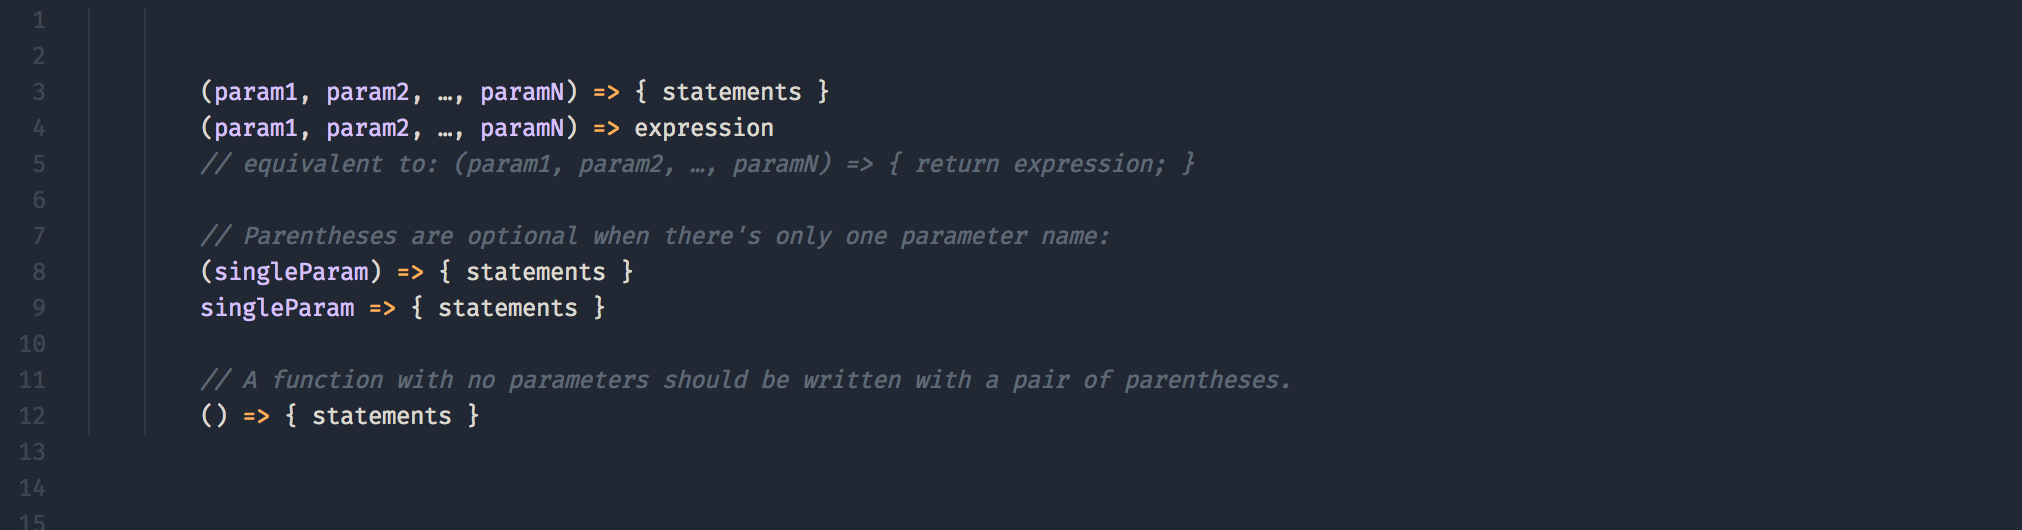 /javascript-es6-arrow-functions-and-lexical-this-f2a3e2a5e8c4 feature image